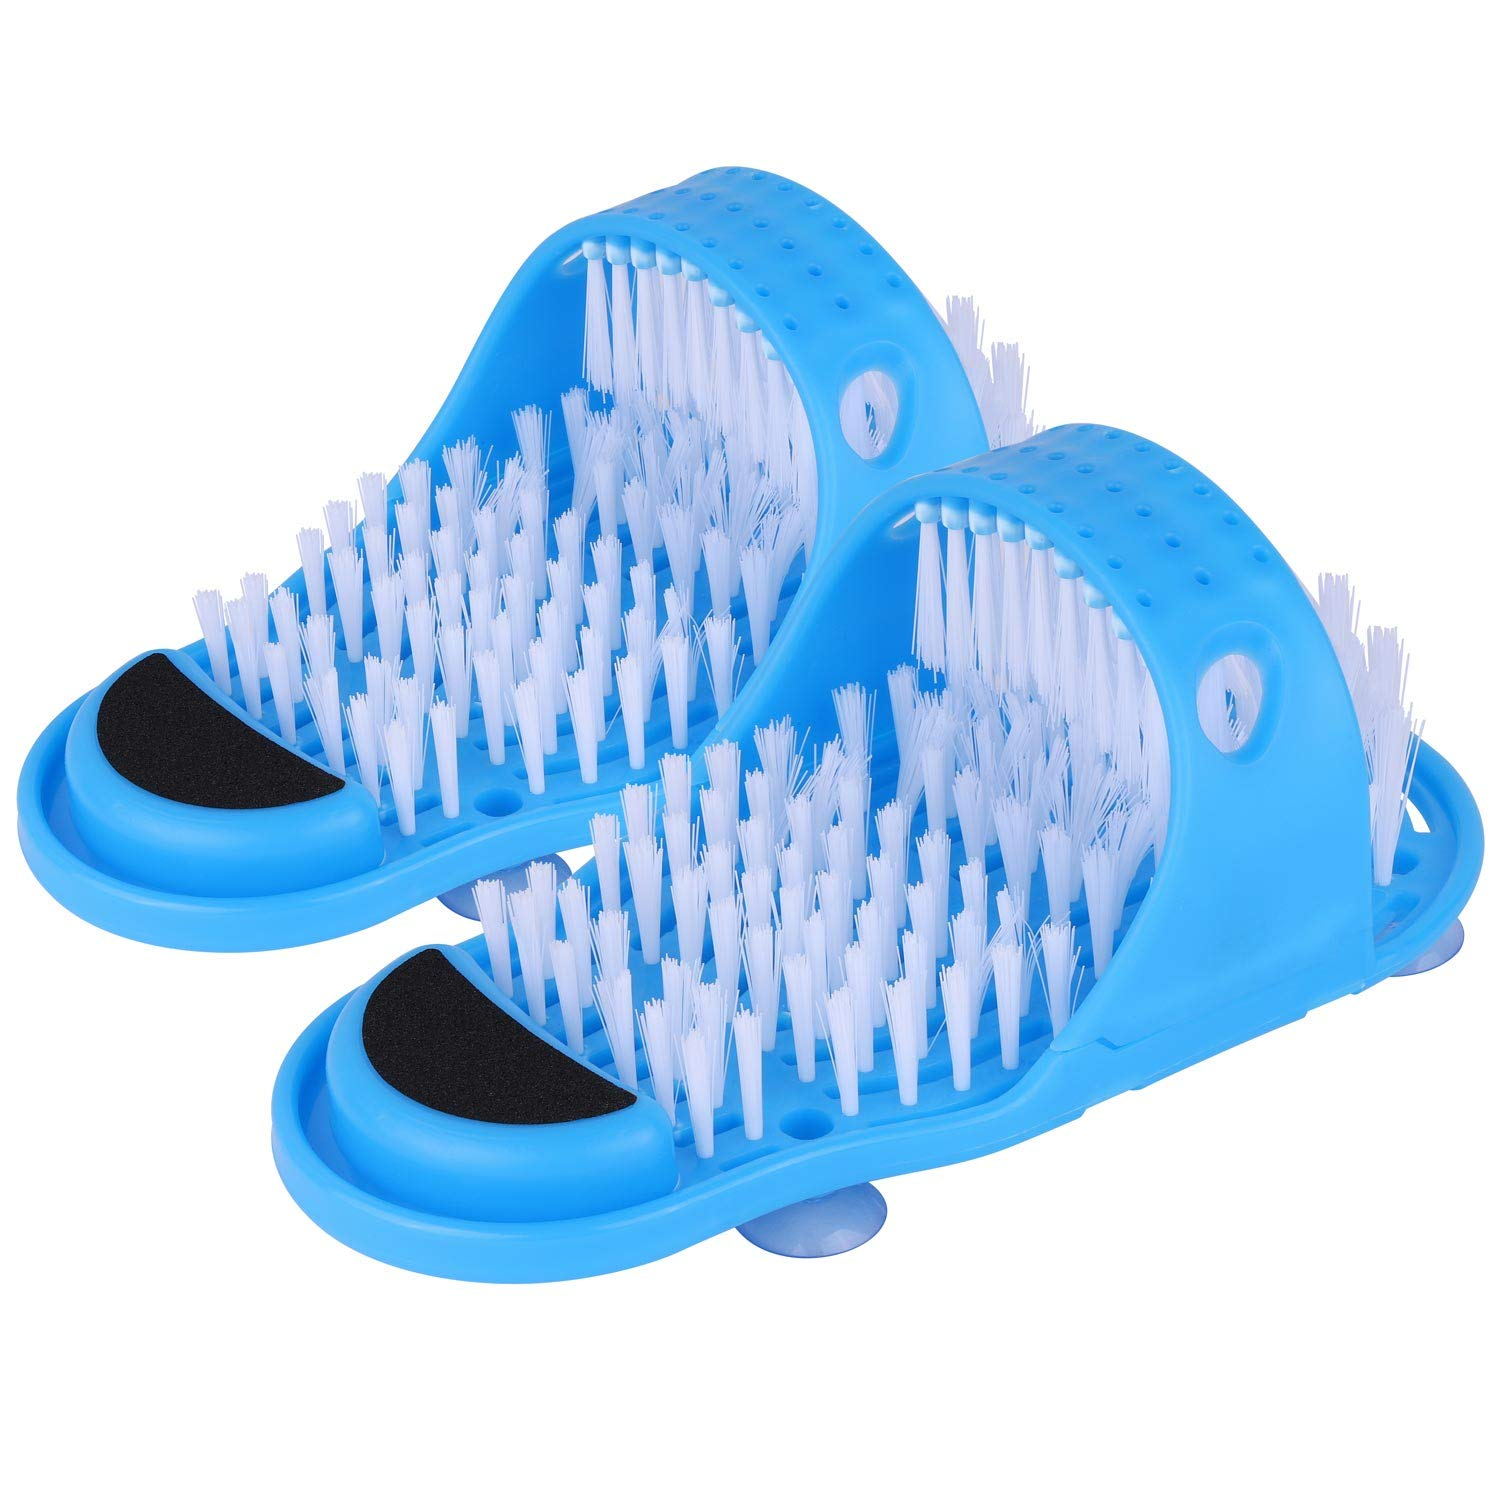 Multipurpose Foot Cleaner, Scrubber & Massage Shower Slippers - The Hummingbird Effect